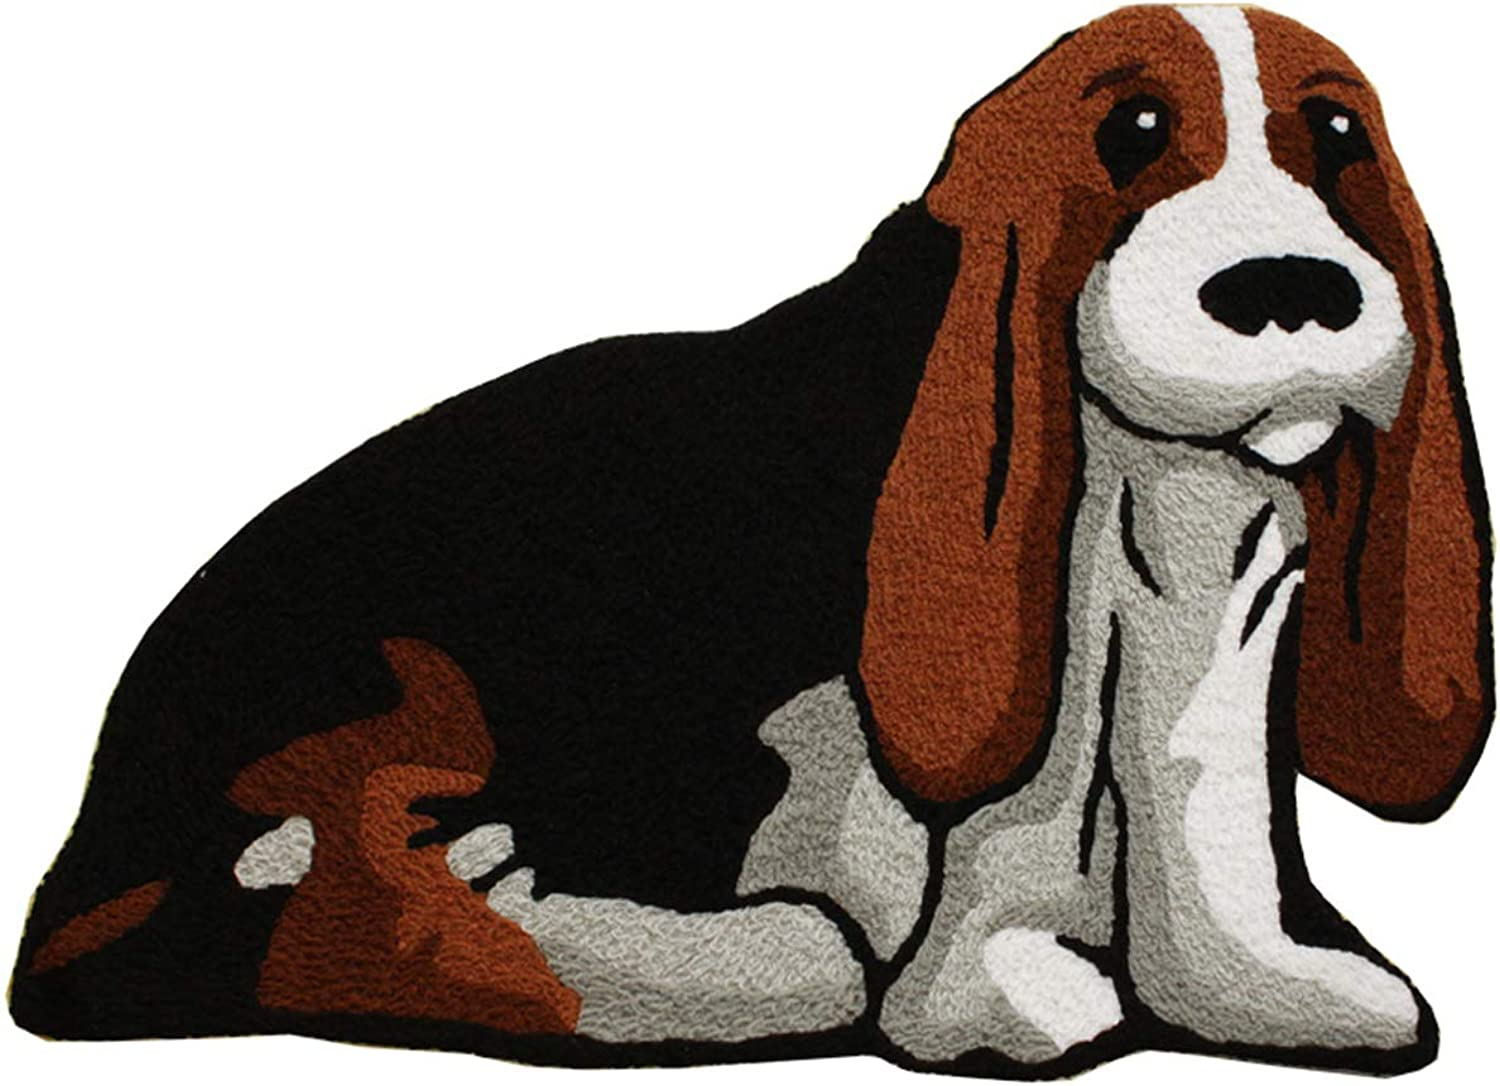 Cute Dog Shaped Bedroom Area Rug,Christmas Bedroom Non Slip Soft Doormats for Kitchen,32 by 24 Inch (Dog)